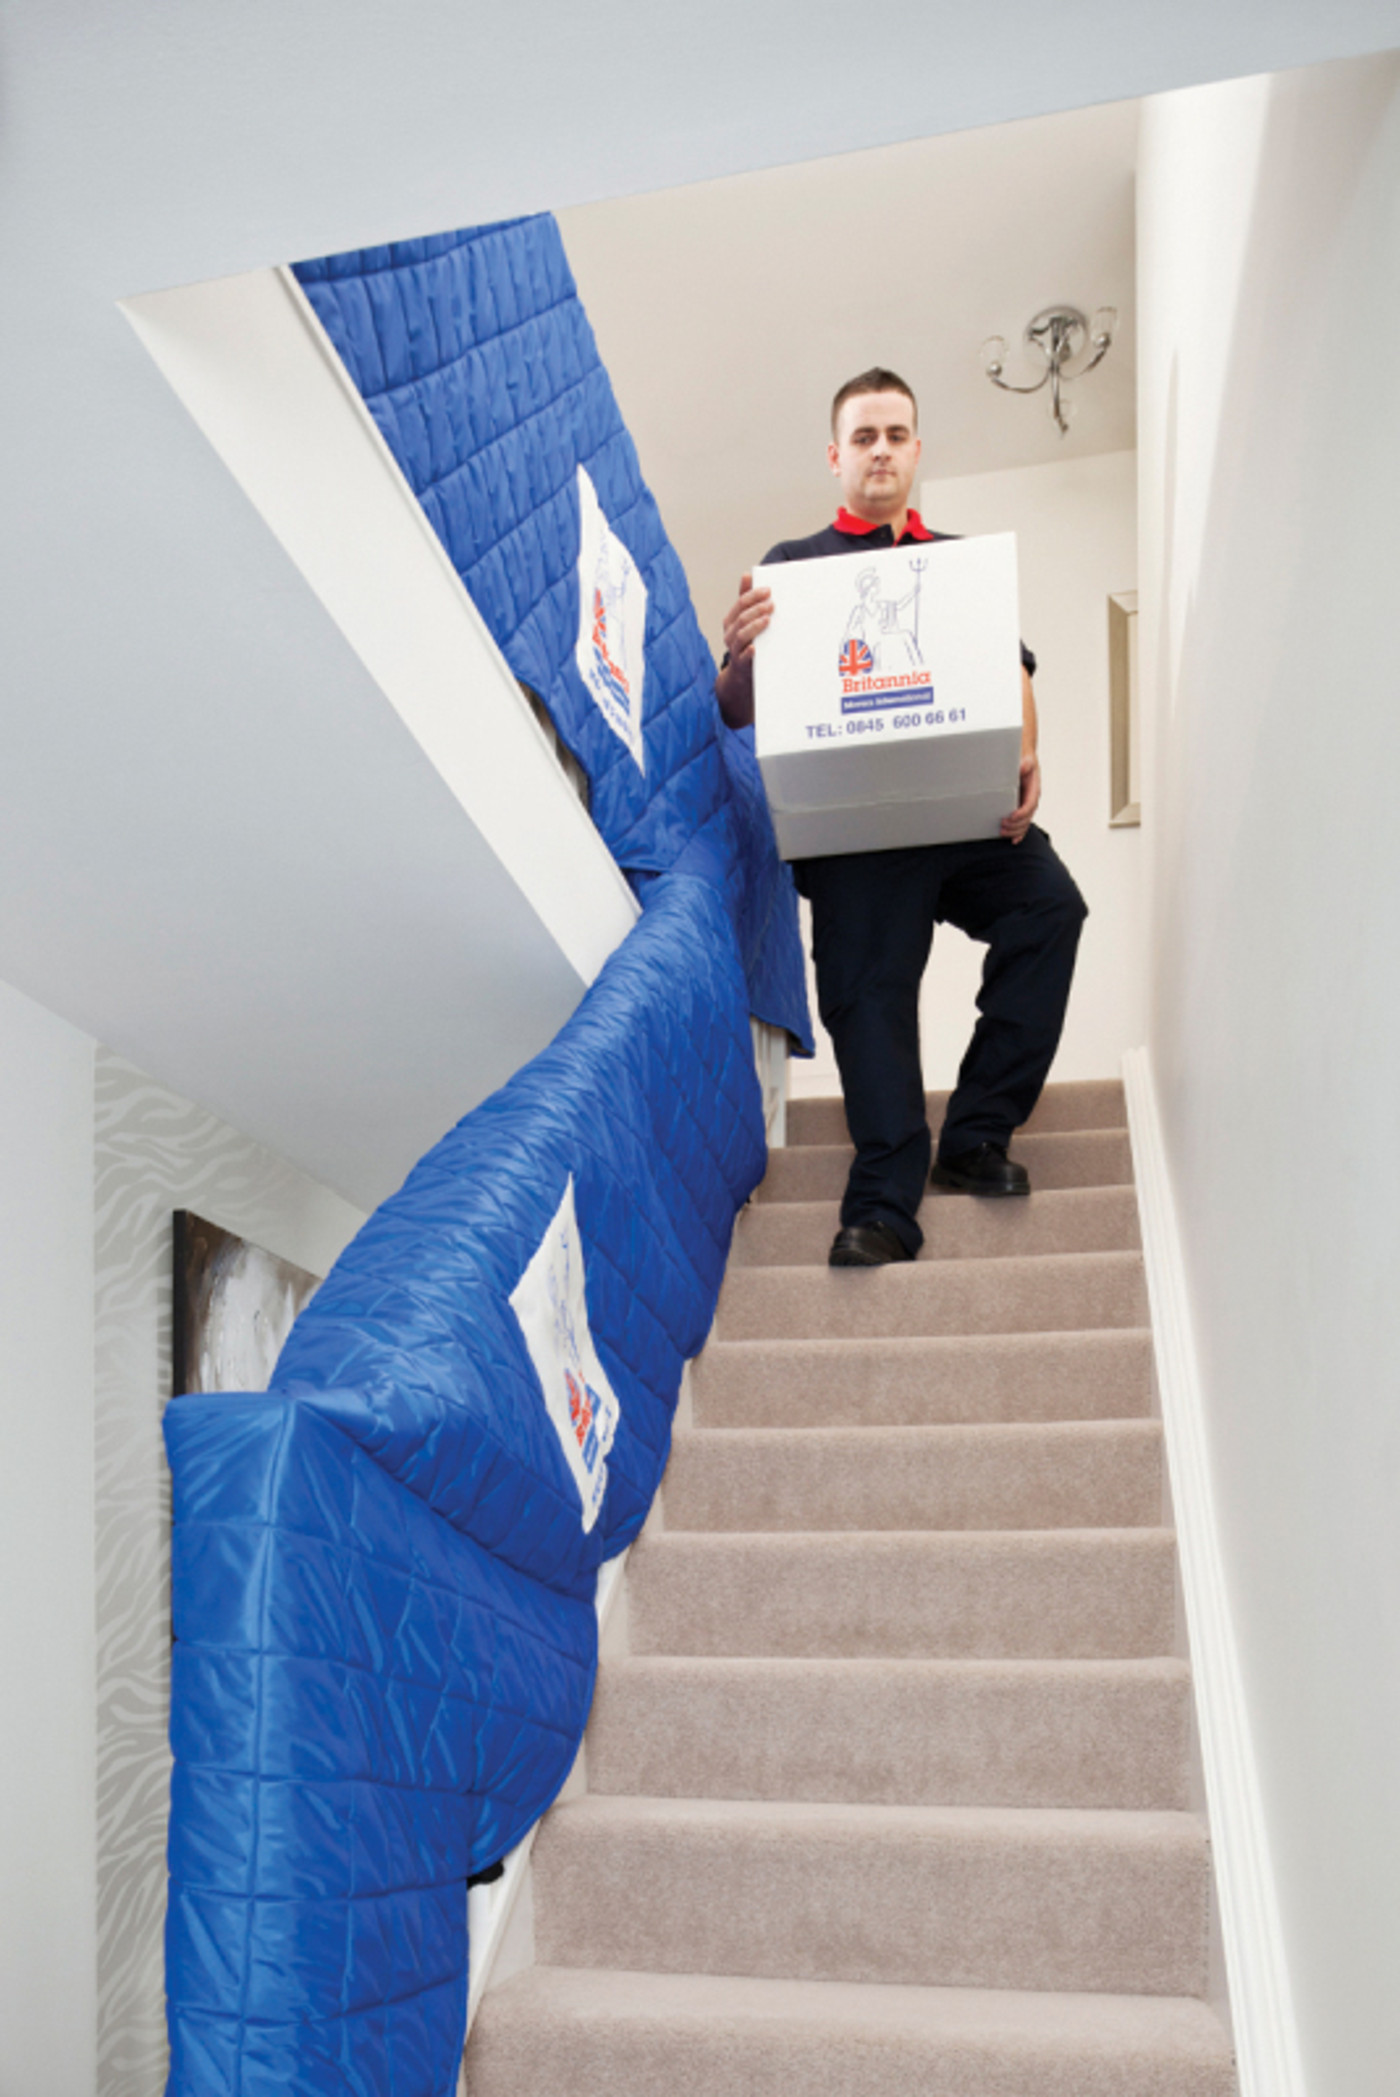 BMI Carrying Items Down the Stairs